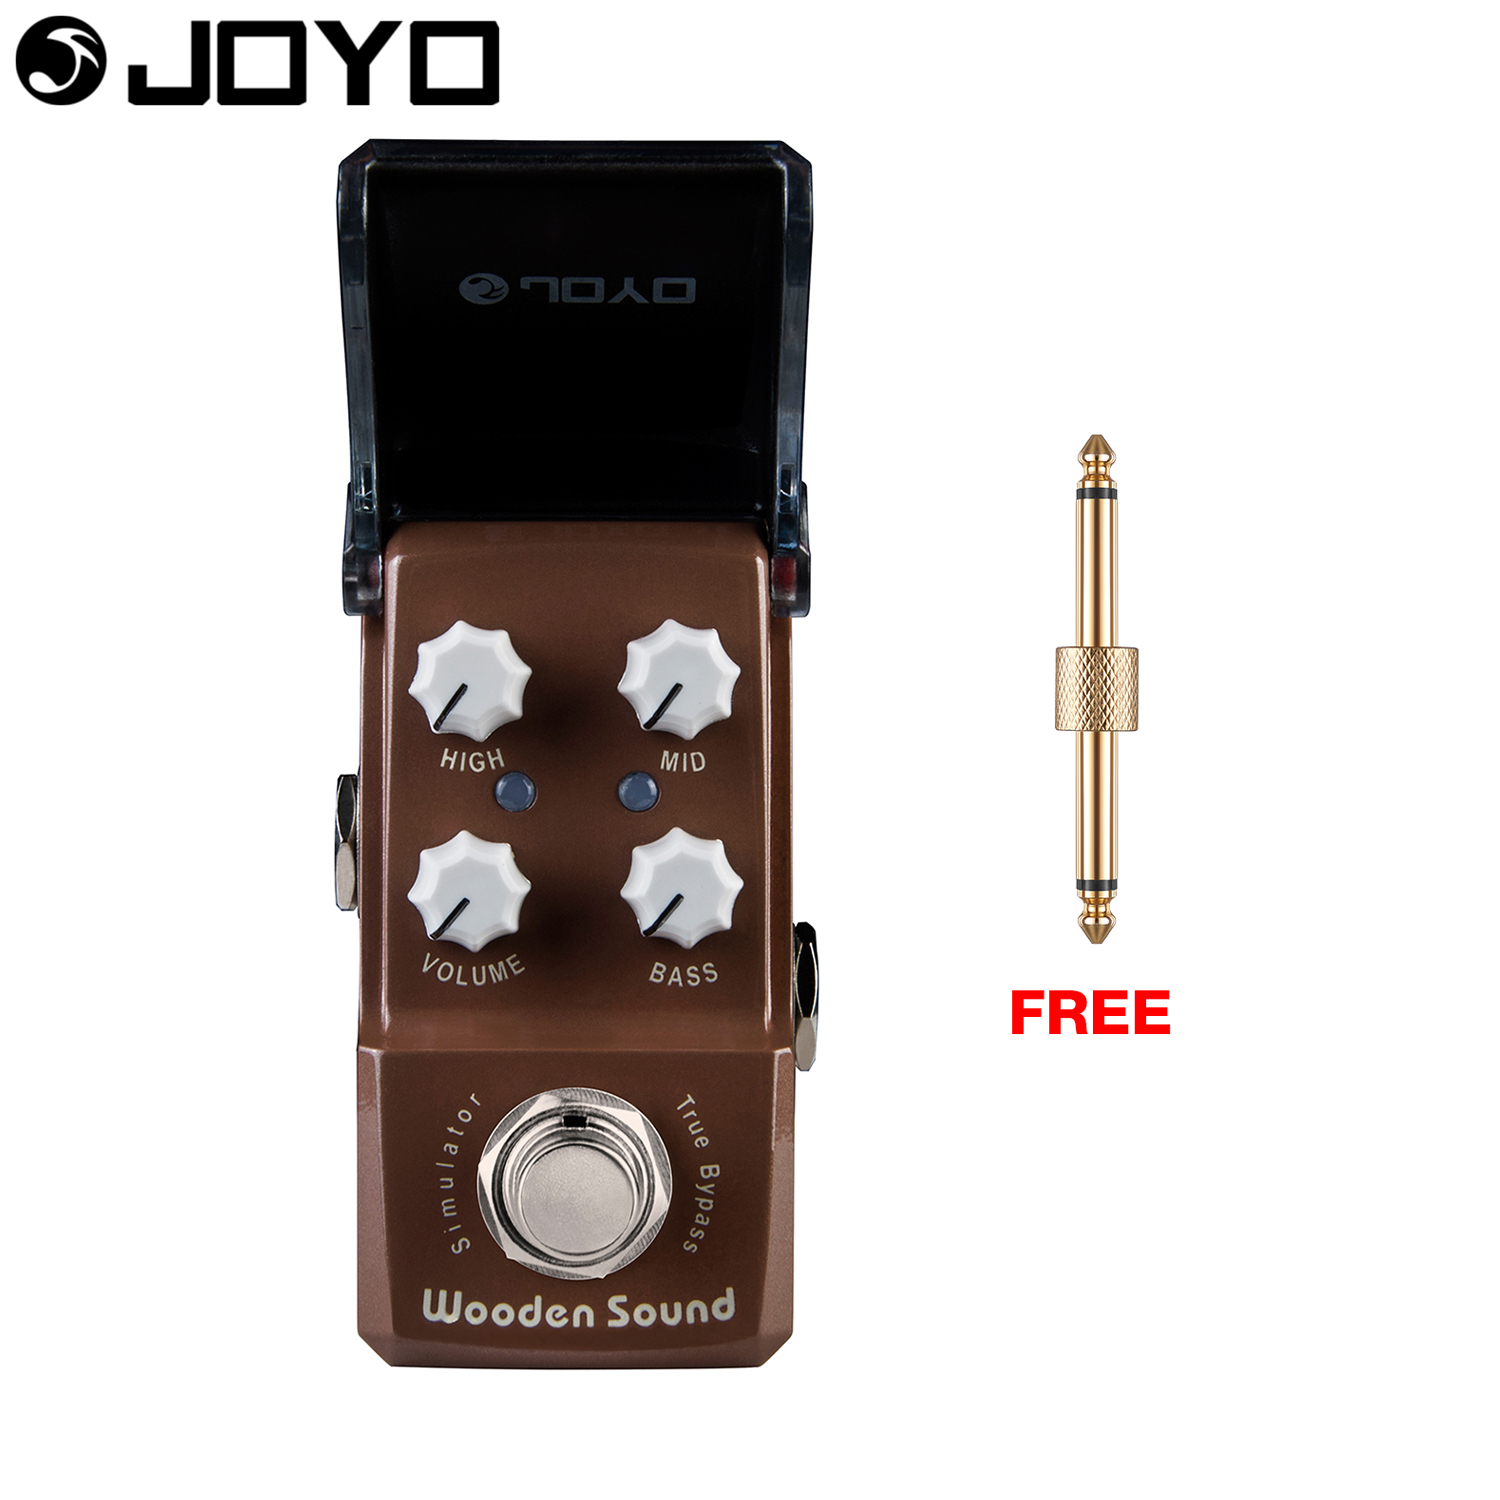 Joyo Wooden Sound Acoustic Simulator Guitar Pedal Mid Control True Bypass Bass Control JF-323 with Free Connector aroma adr 3 dumbler amp simulator guitar effect pedal mini single pedals with true bypass aluminium alloy guitar accessories